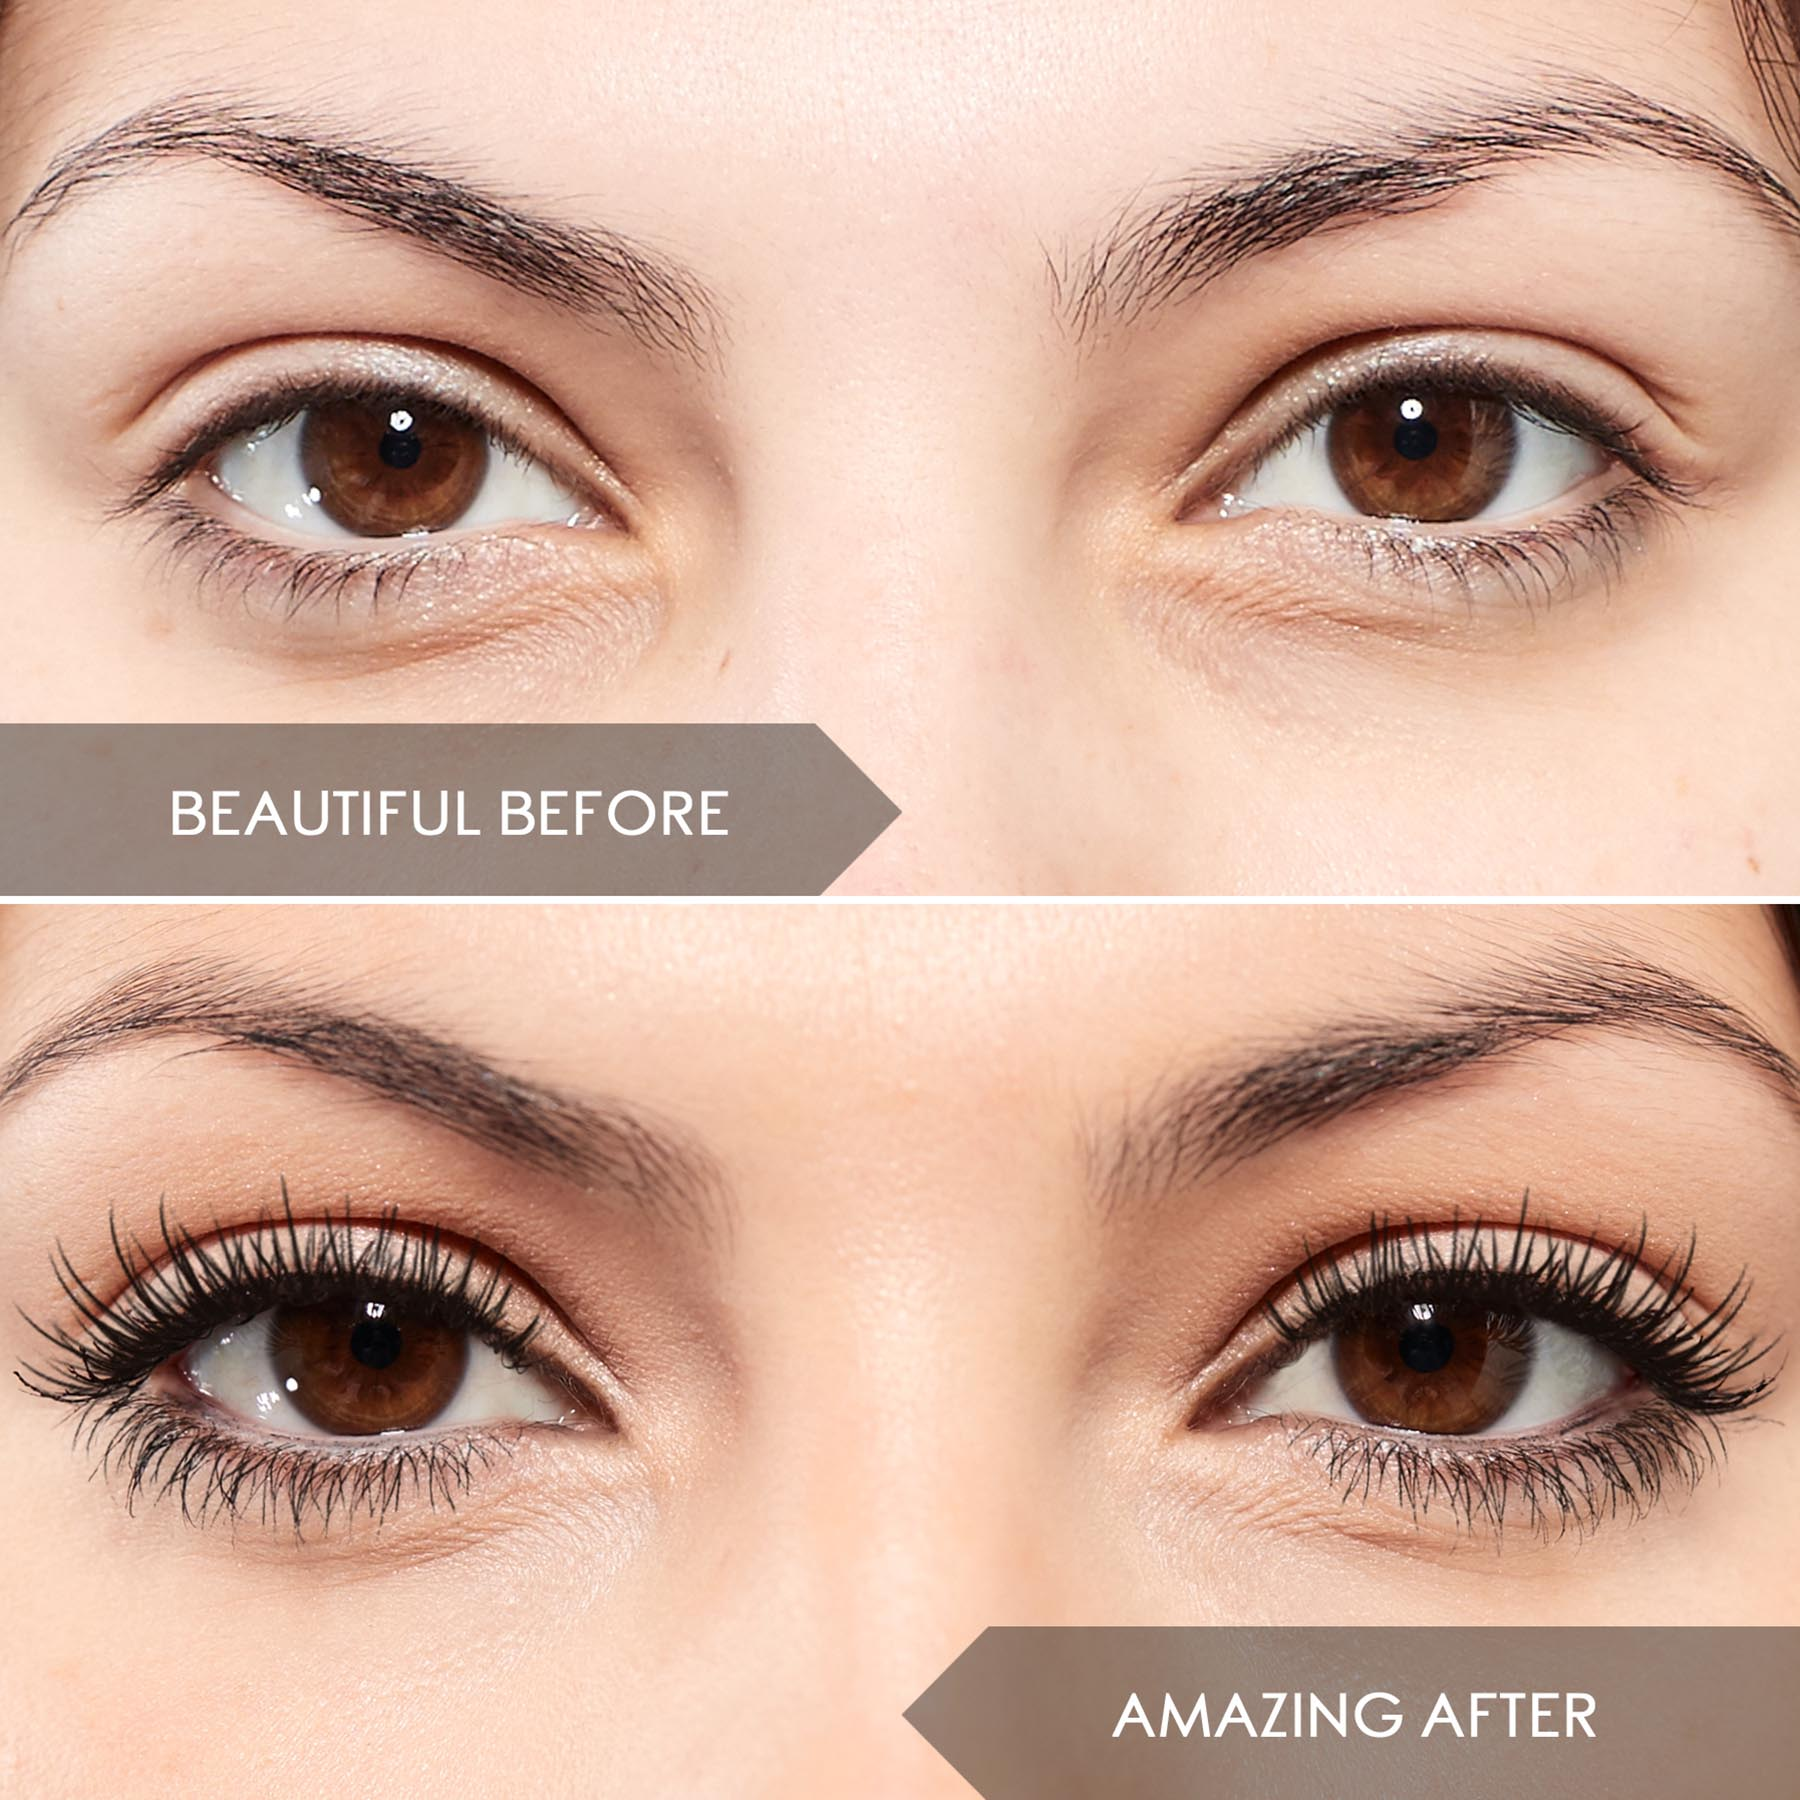 28f823c4a58 Mirenesse Lash Whip 24 Hr Tubing Mascara That Lifts, Defines ...